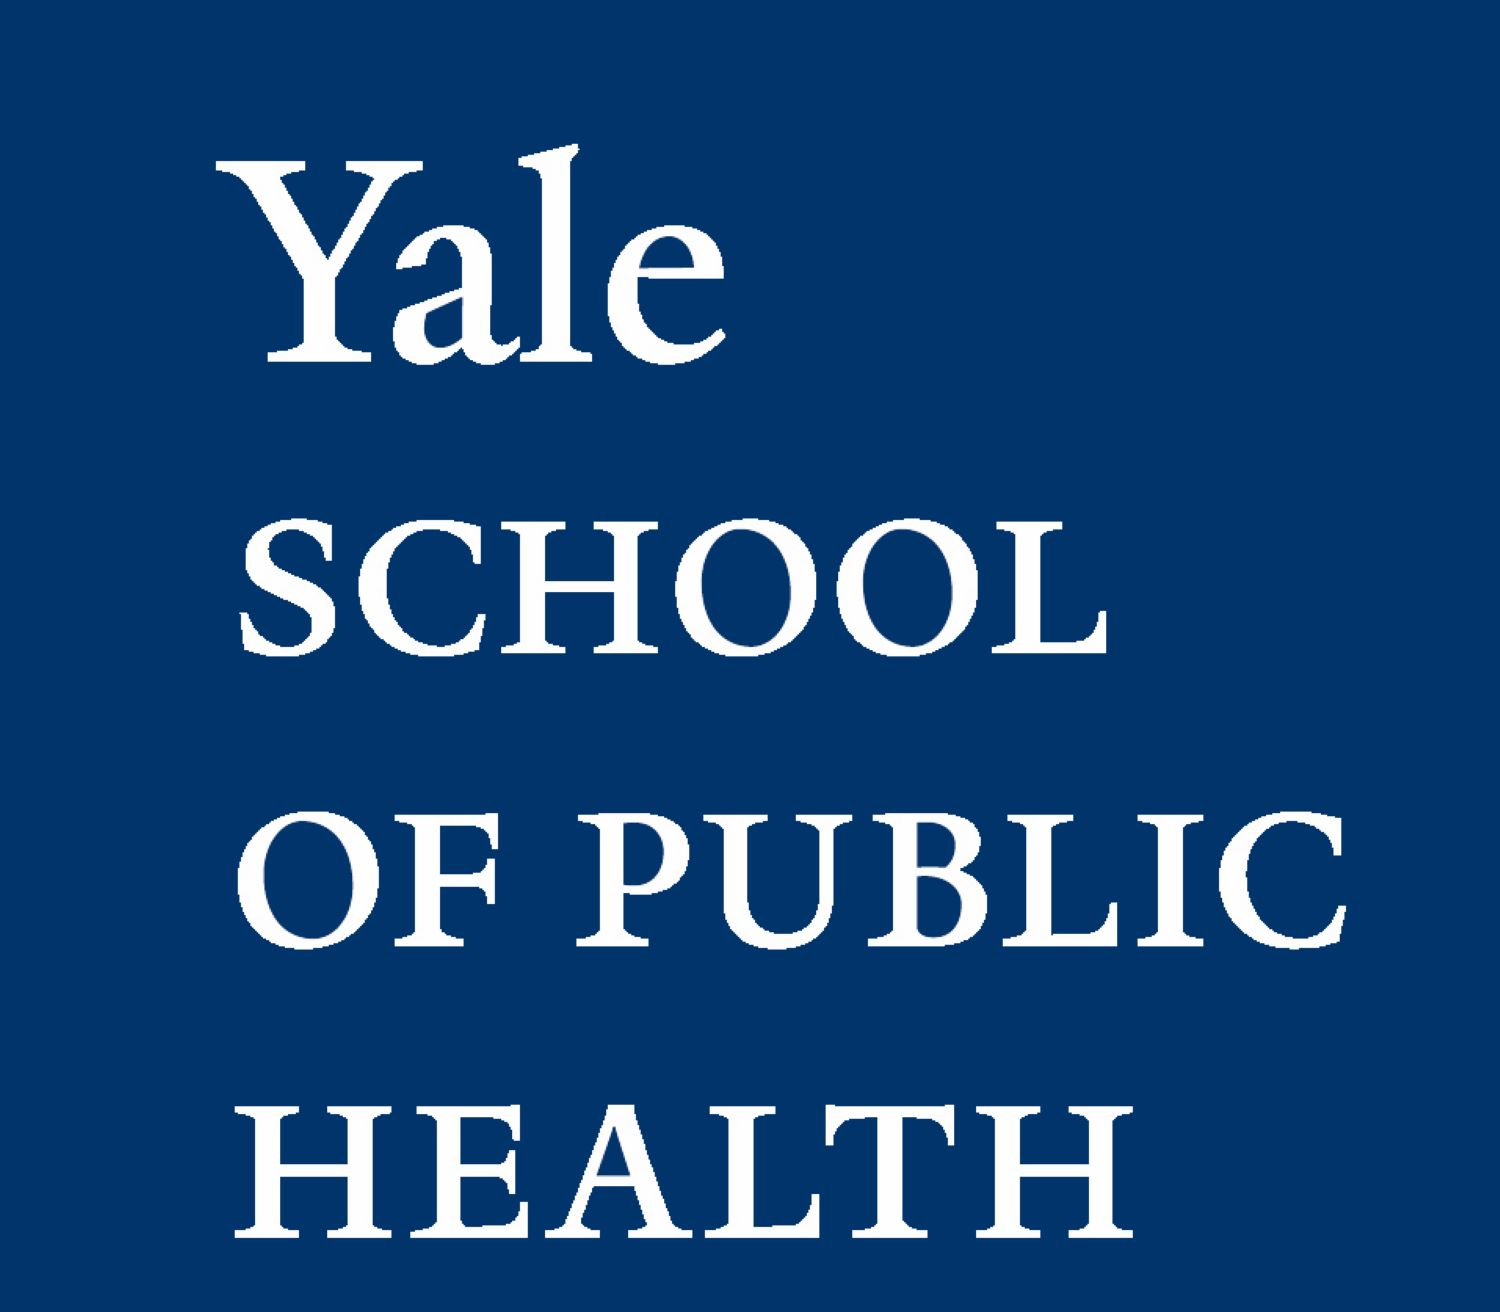 The Yale School of Public health